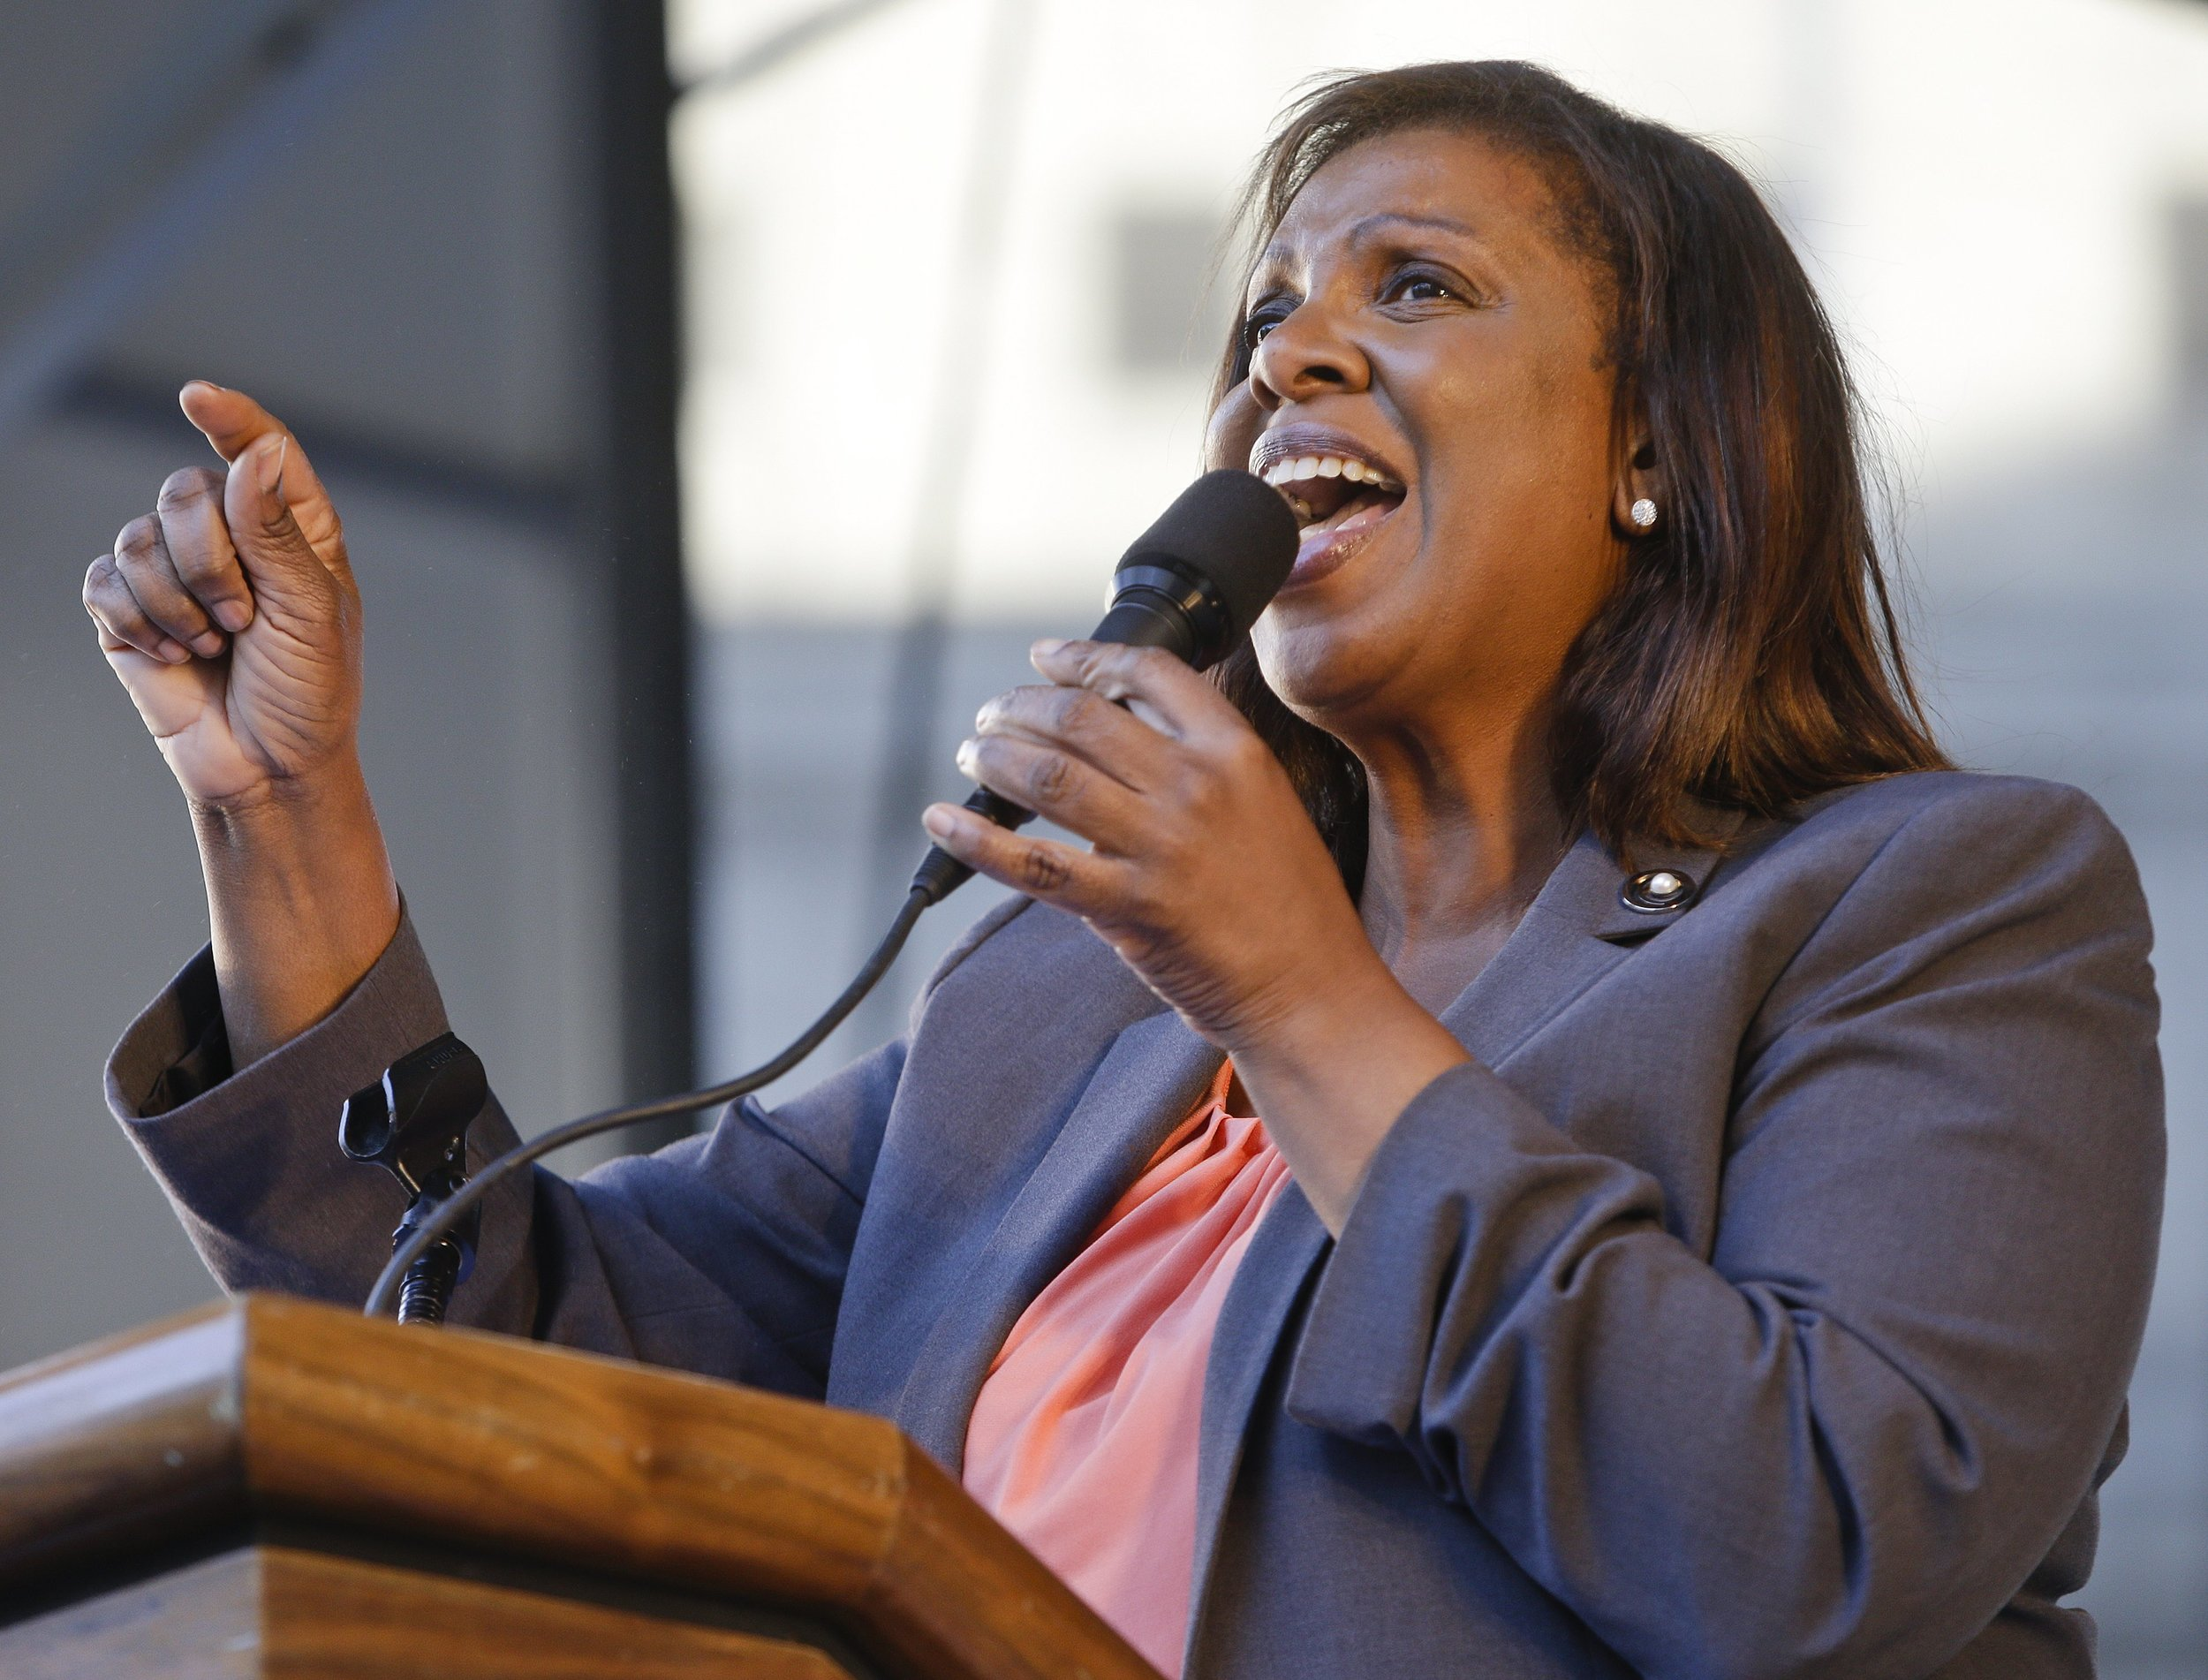 New York Attorney General Letitia James said she supports decriminalizing gravity knives. AP Photo/Frank Franklin II